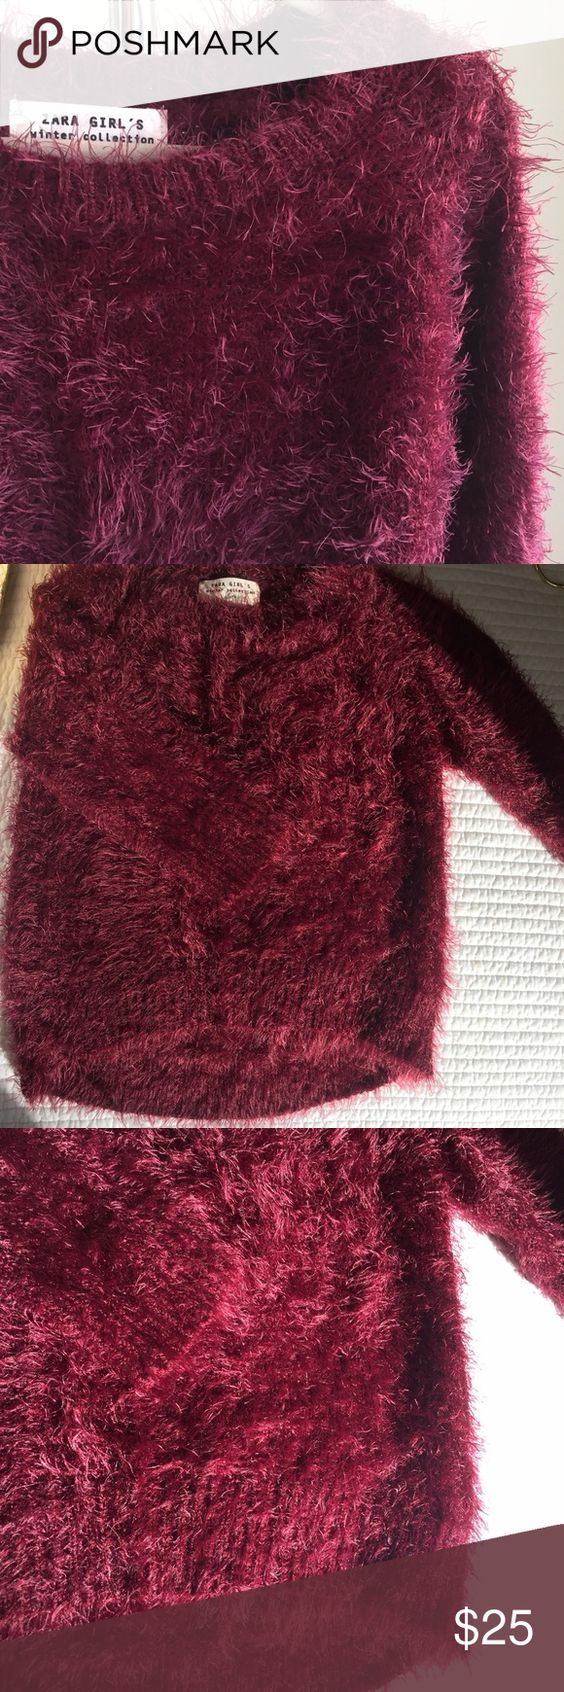 ZARA Girls Winter Collection Furry Sweater ZARA Girls Winter Collection. Super soft furry sweater in Burgandy. Slight high-low hem. 70% Polyamide 30% Acrylic. Worn once and in Excellent condition. Zara Shirts & Tops Sweaters